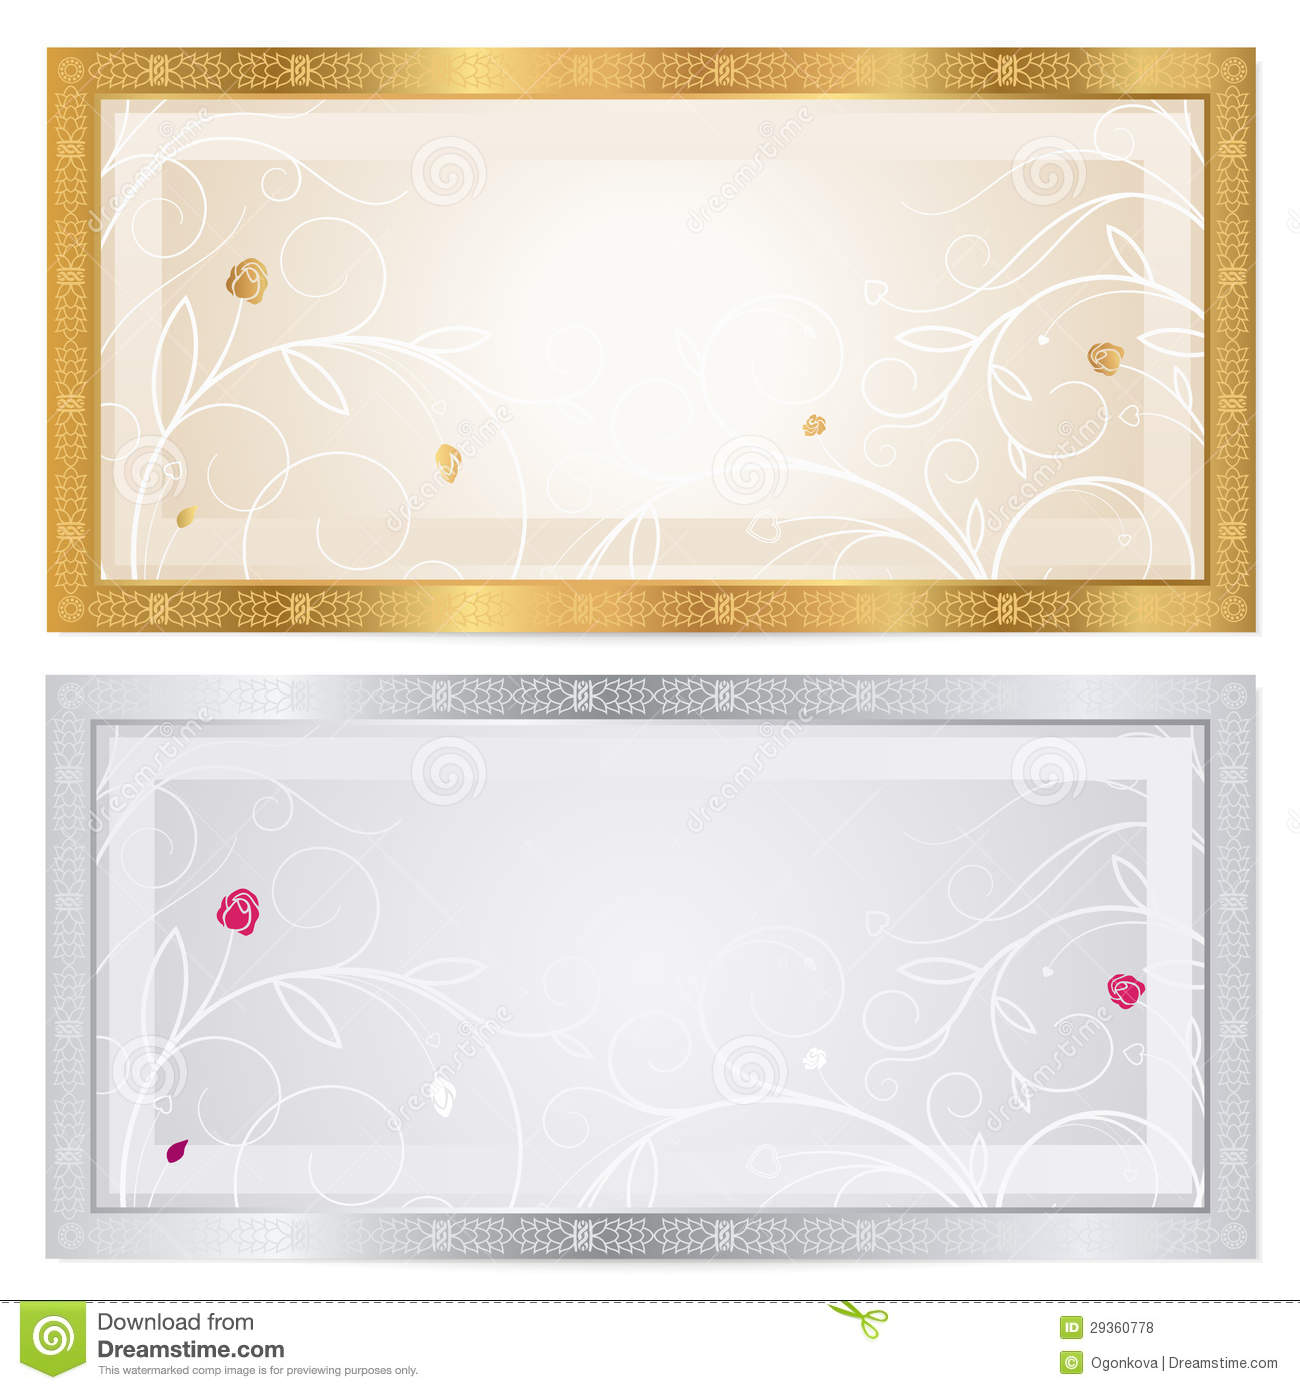 silver    gold voucher template with floral pattern royalty